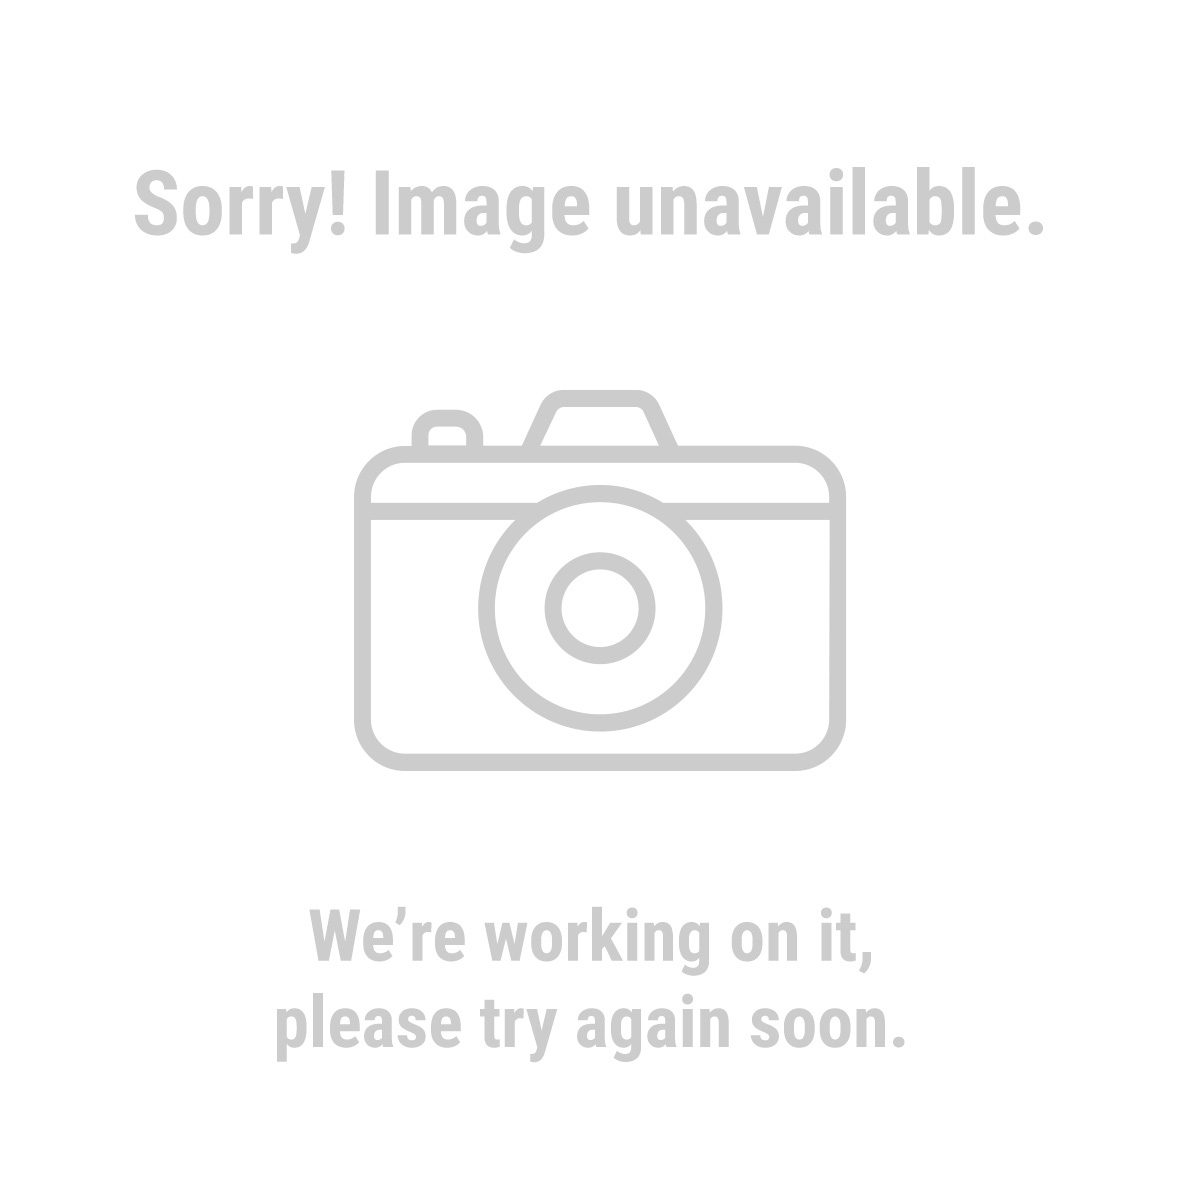 StikTek™ 63241 1.88 in. x 55 Yards Clear Packaging Tape 3 Pk.